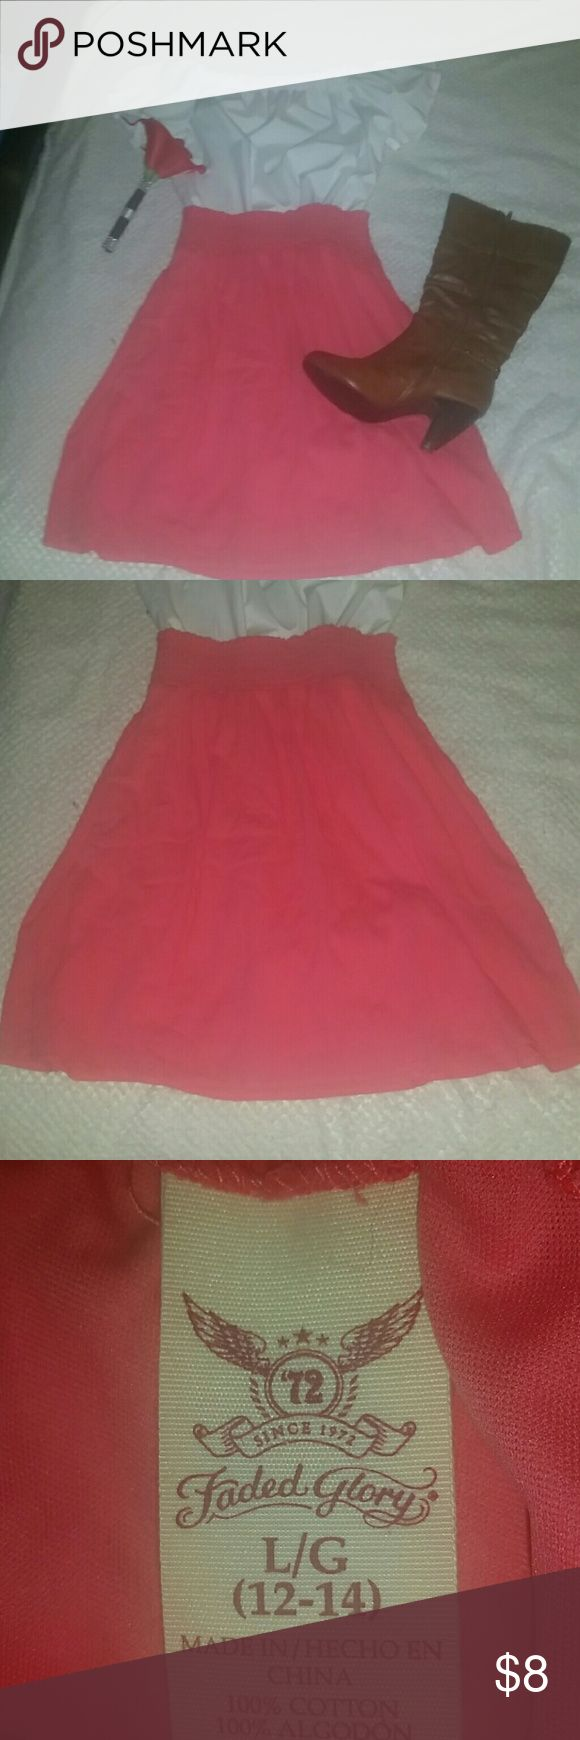 Coral skirt Adorable coral skirt with thick elastic waistband. Has a built in slip. Great for twirling!😁 size Large Faded Glory Skirts Midi